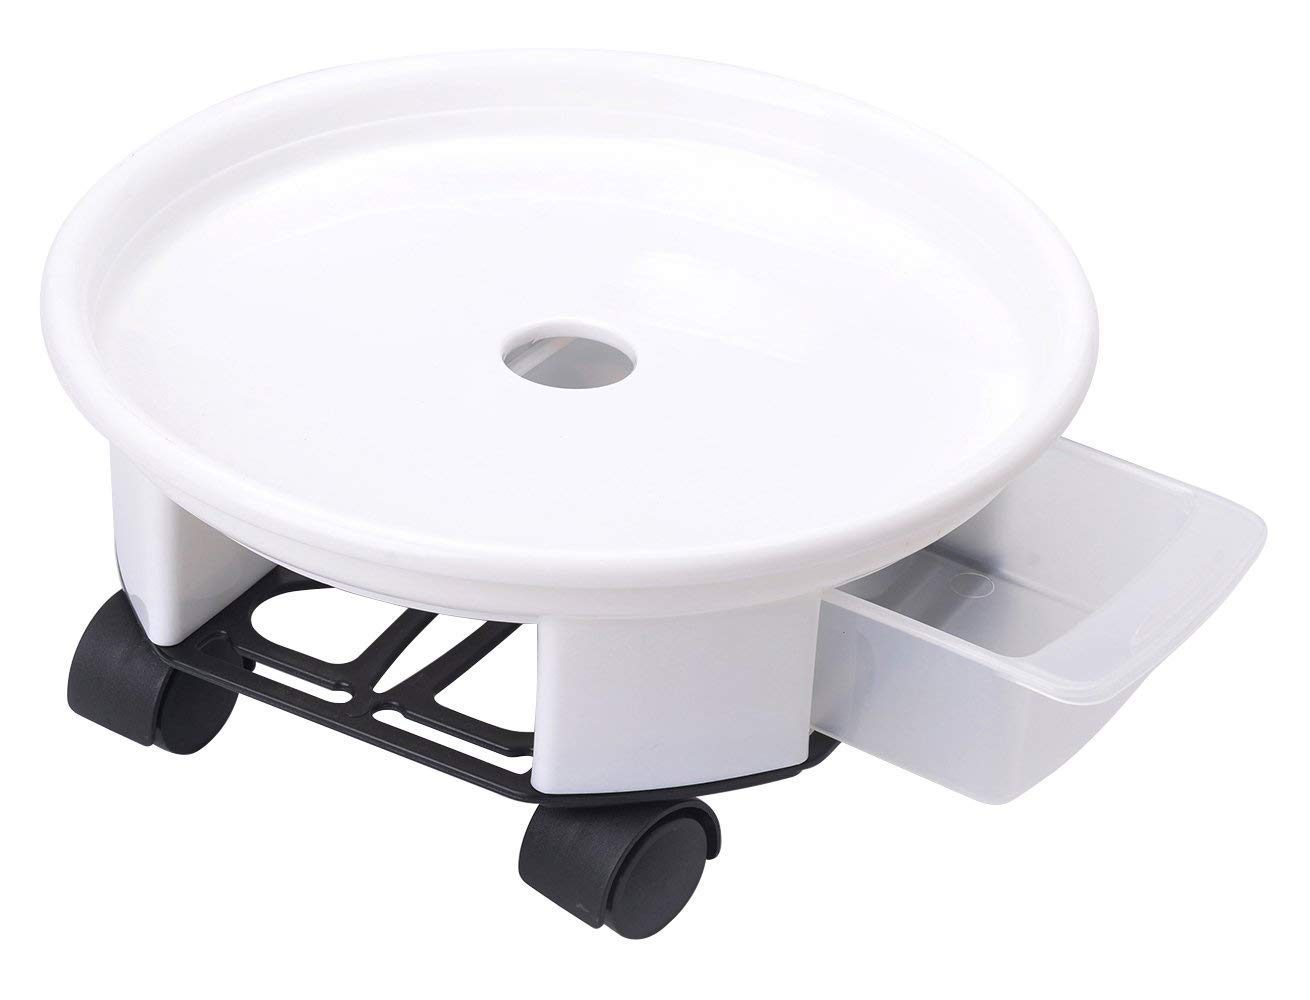 Antetok 27cm Plant Caddy Round Plant Dolly Trolley Saucer Moving Tray Pallet with Wheels and a Water Container Black